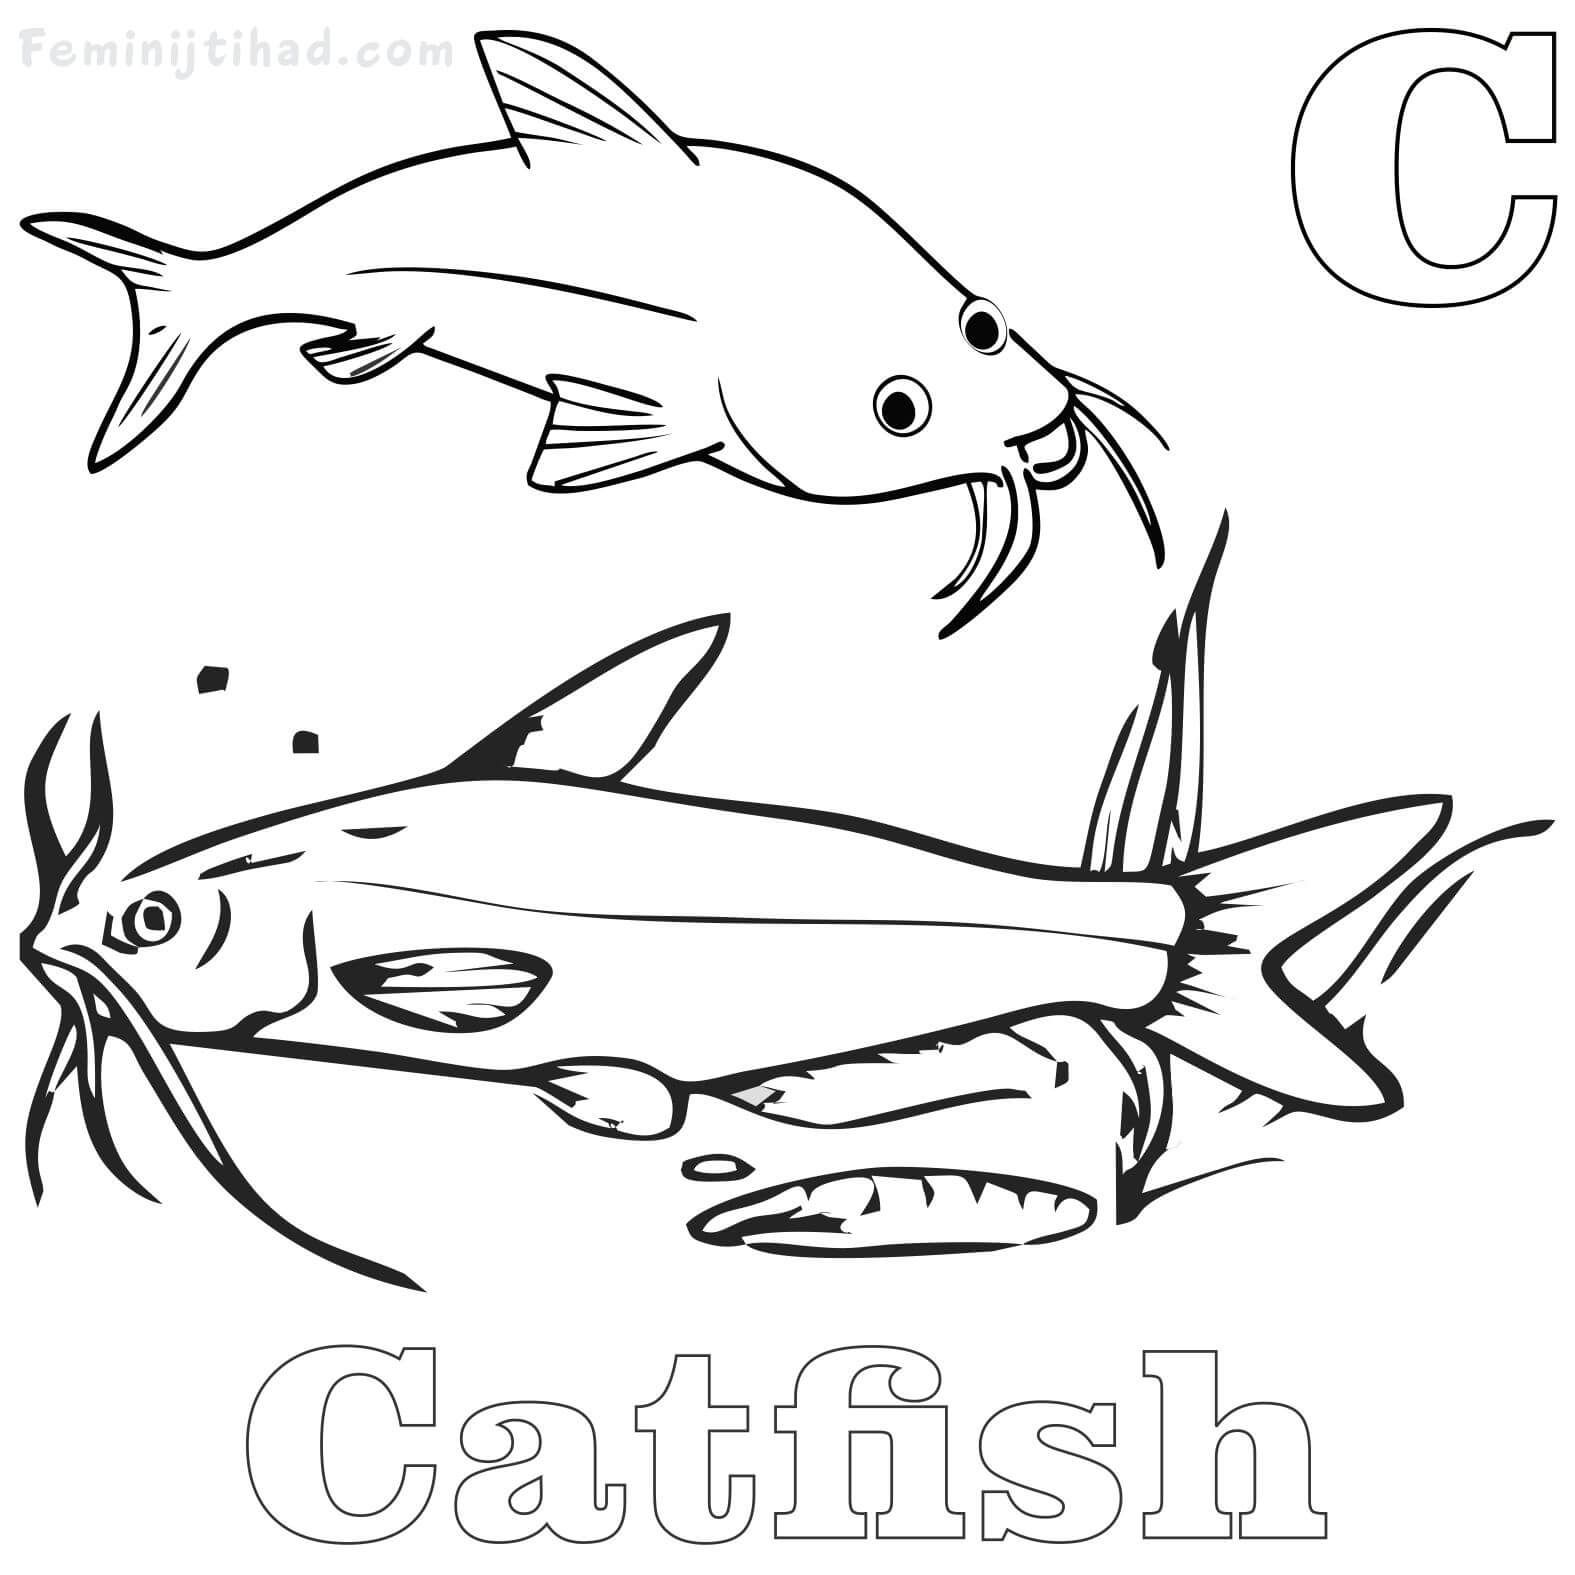 Catfish Coloring Pages Printable For Free Free Coloring Sheets Animal Coloring Pages Coloring Pages Free Coloring Sheets